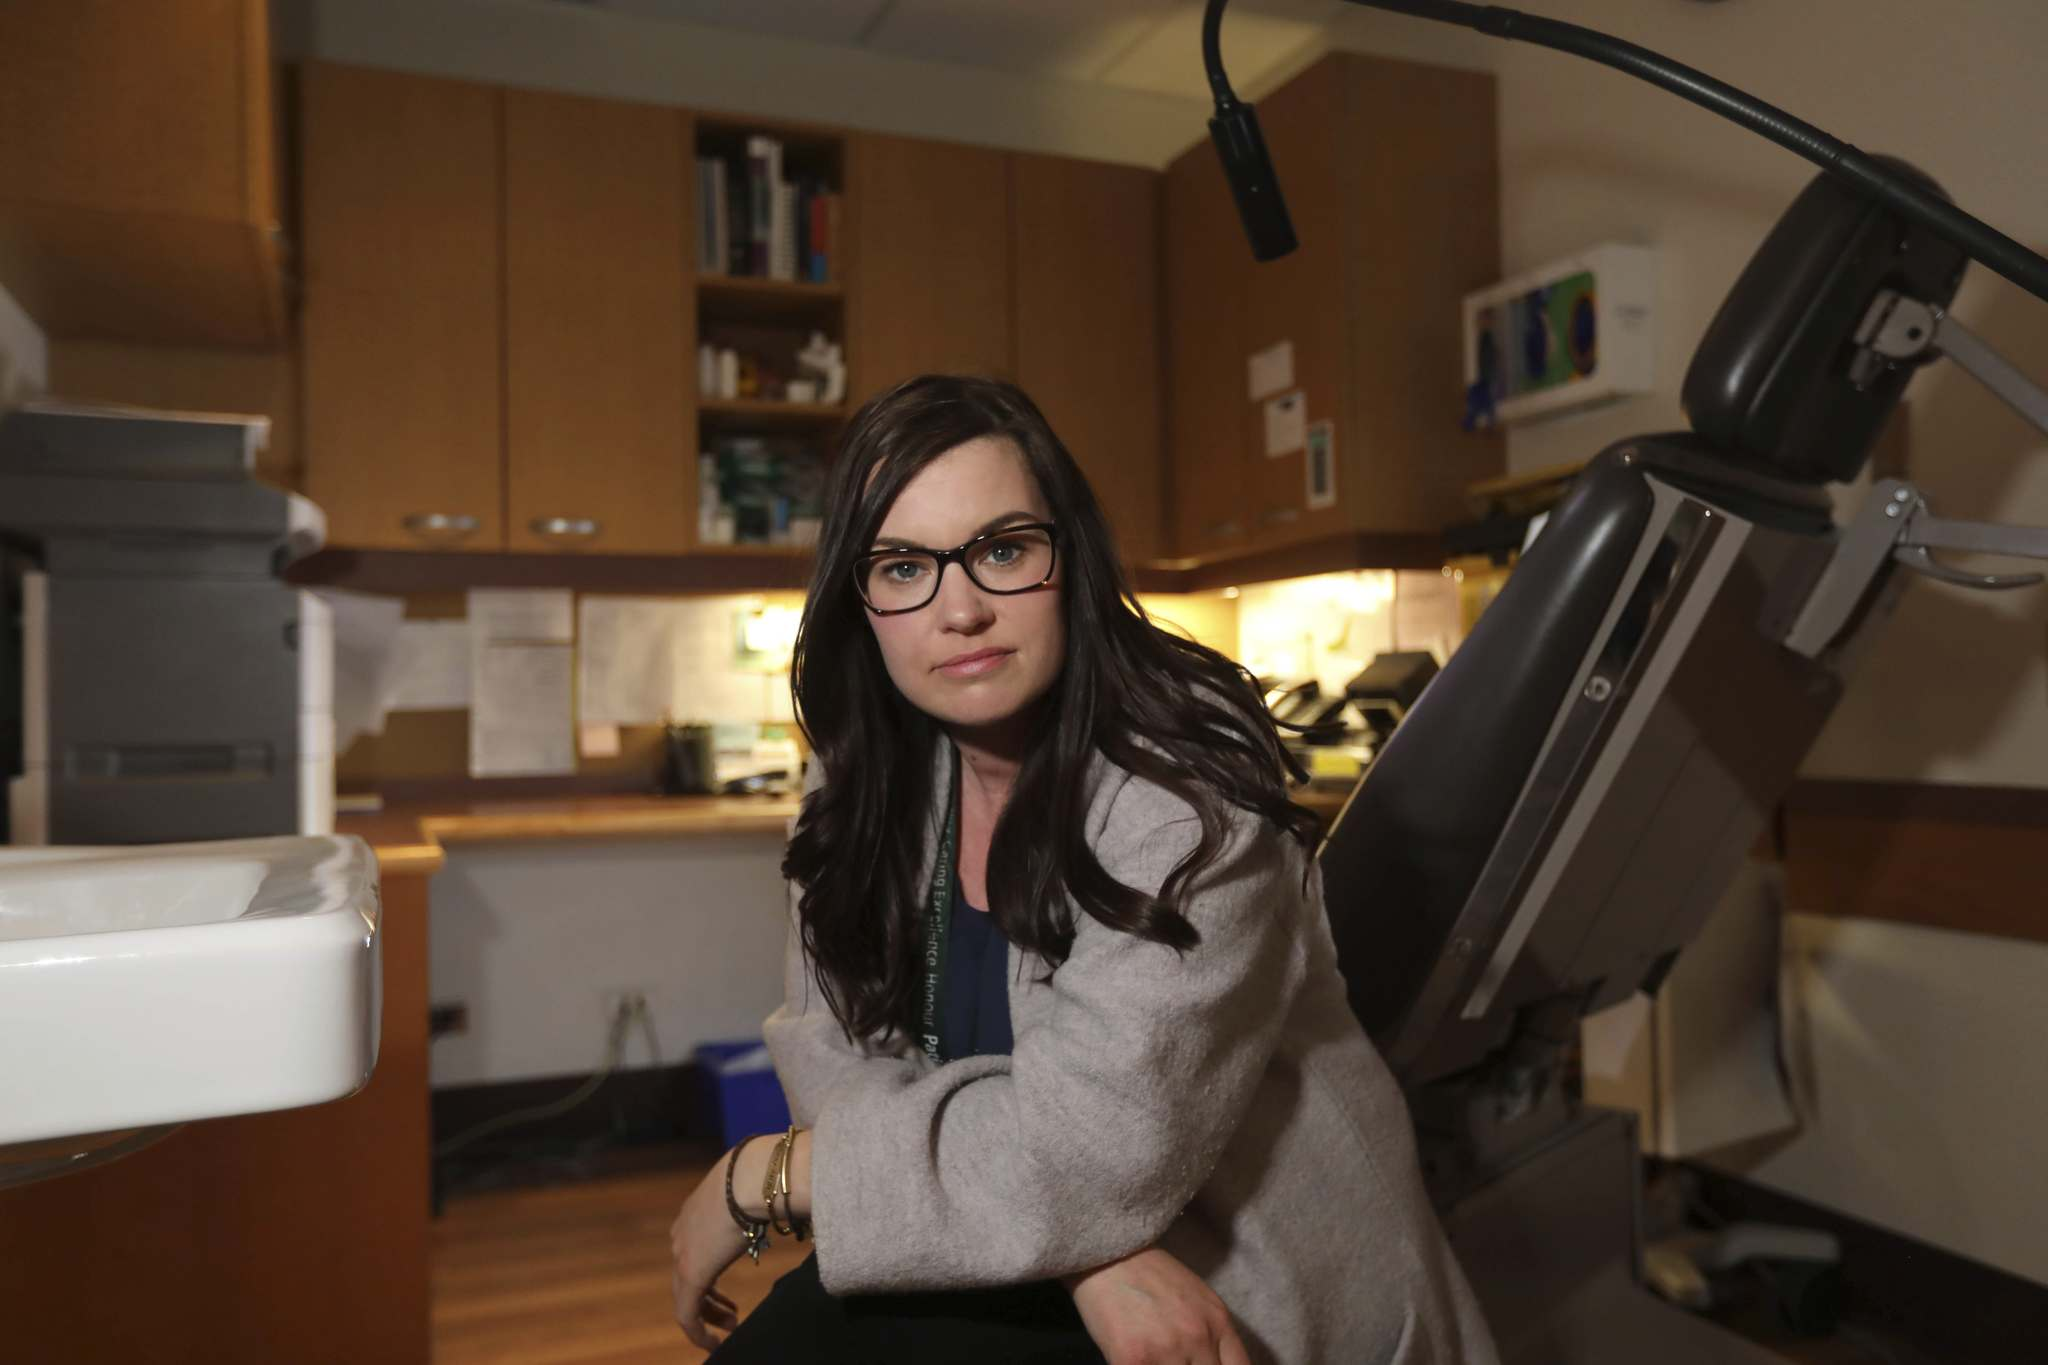 Forensic nurse Ashley Smith says giving control back to patients as soon as possible is a key part of the healing journey. A forensic nurse would have specialized knowledge of the legal system. (Ruth Bonneville / Winnipeg Free Press)</p>